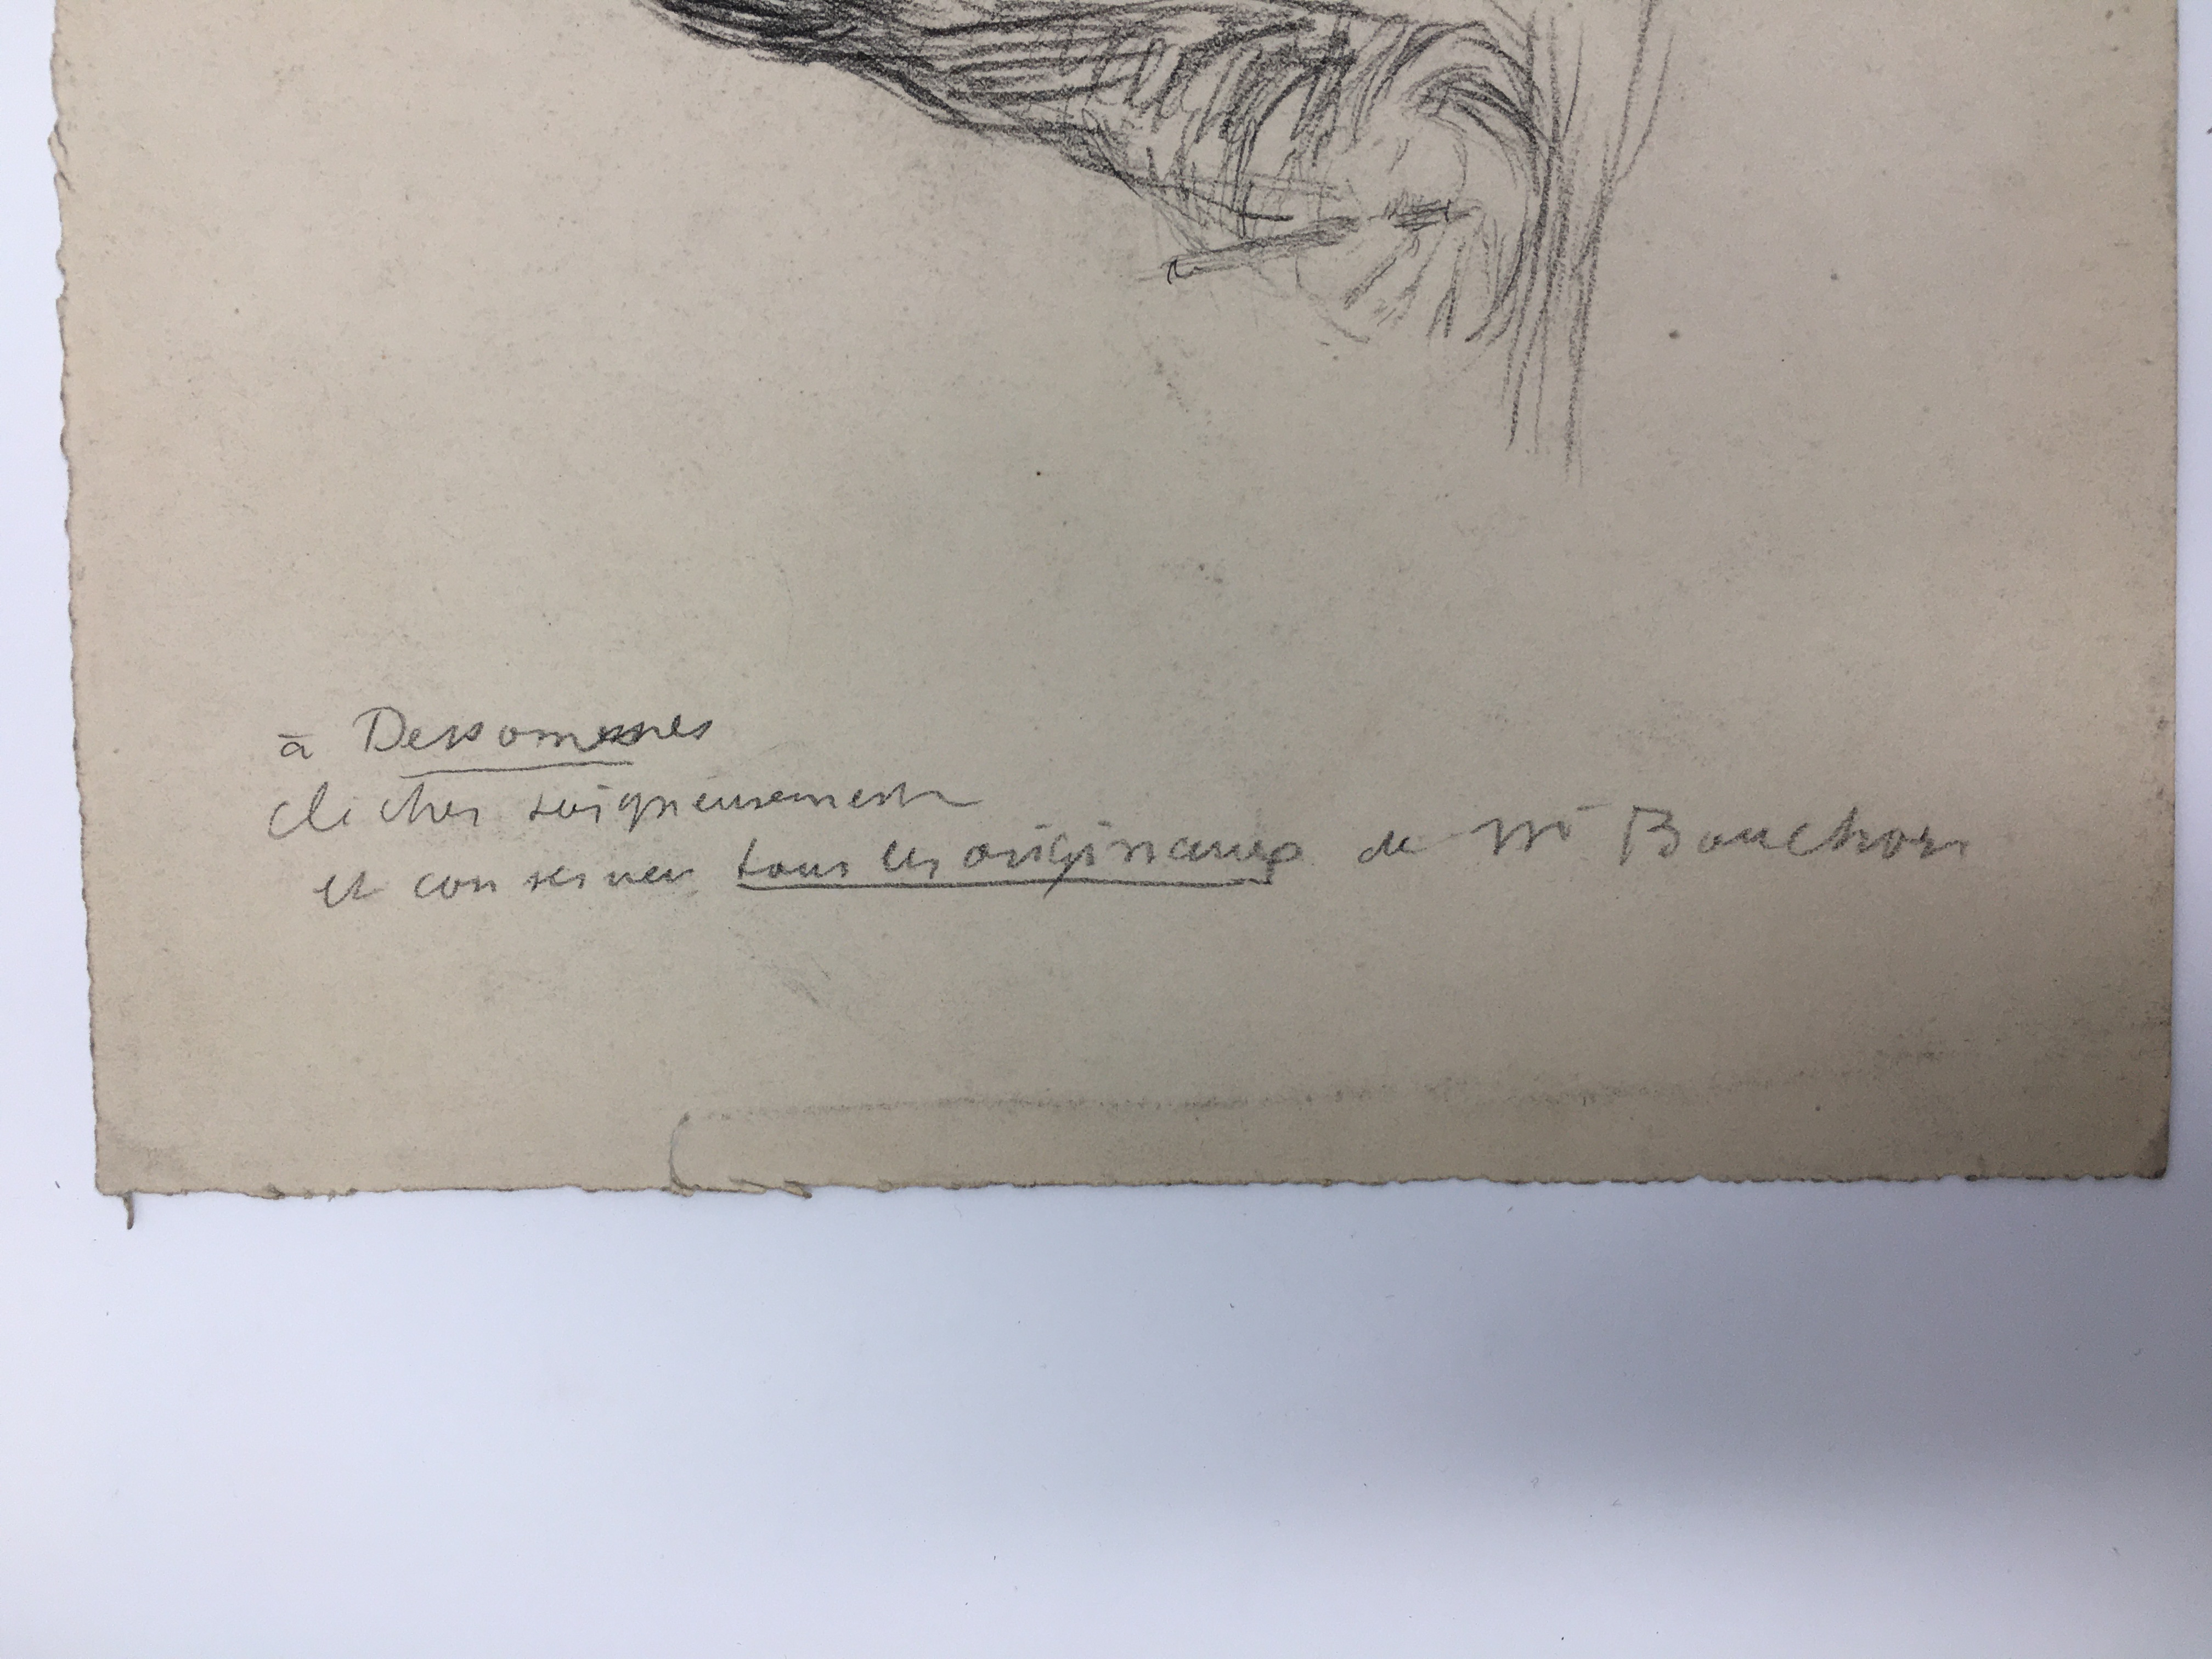 J'Accuse Newspaper, Emile Zola Quote, Signed Dreyfus Portrait, Rare Trial Drawings & Schwartzkoppen - Image 42 of 74